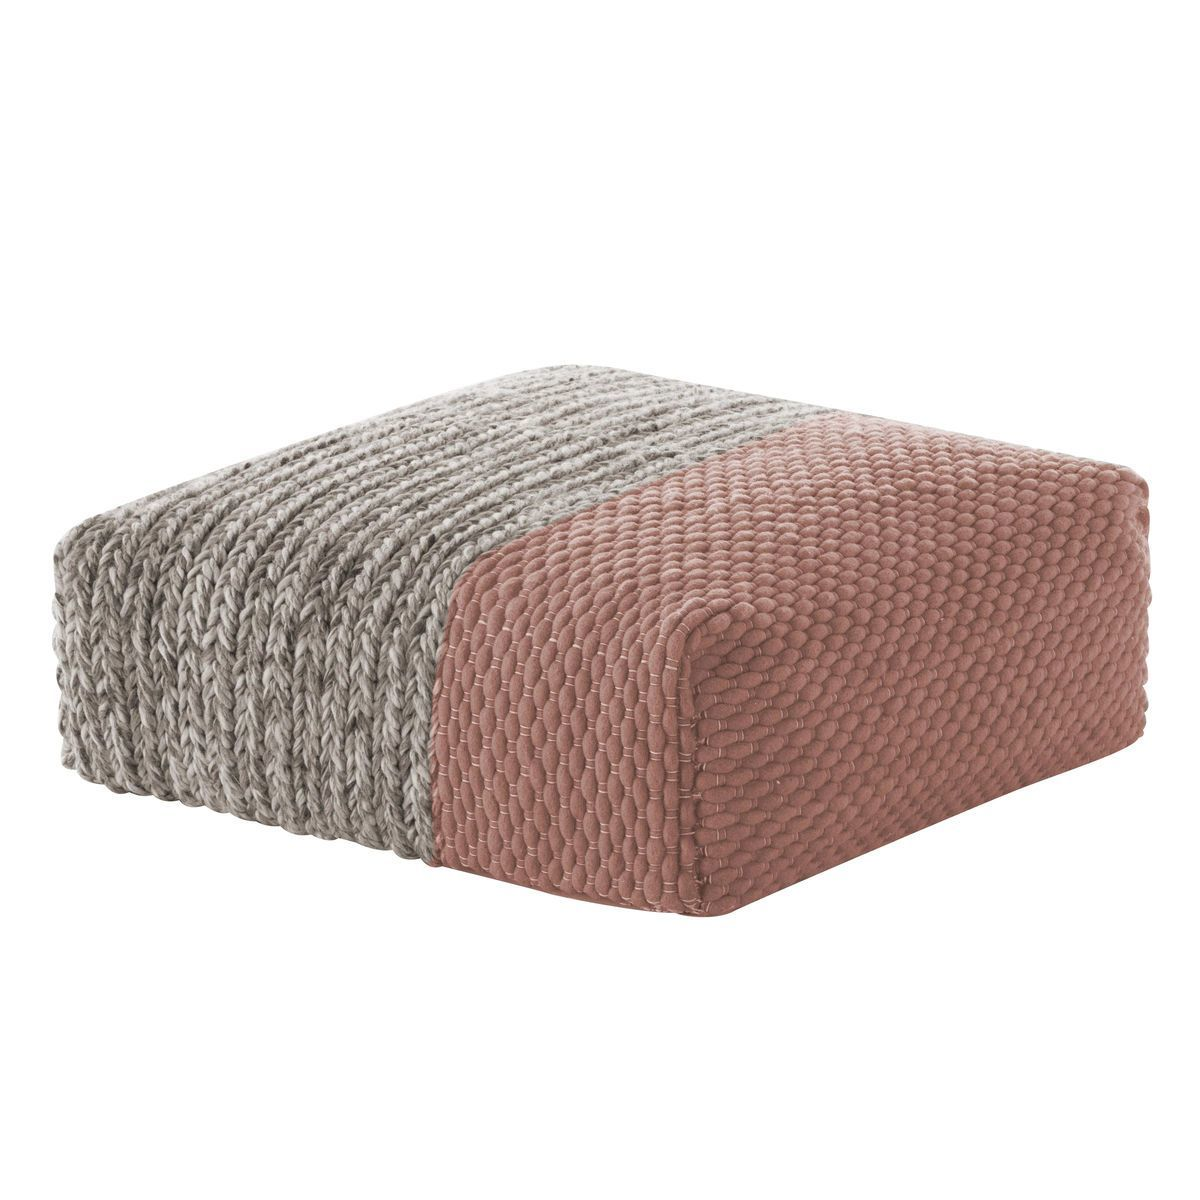 mangas space square pouf  gan  ambientedirectcom - gan  mangas space square pouf  pinkgrey plait wool